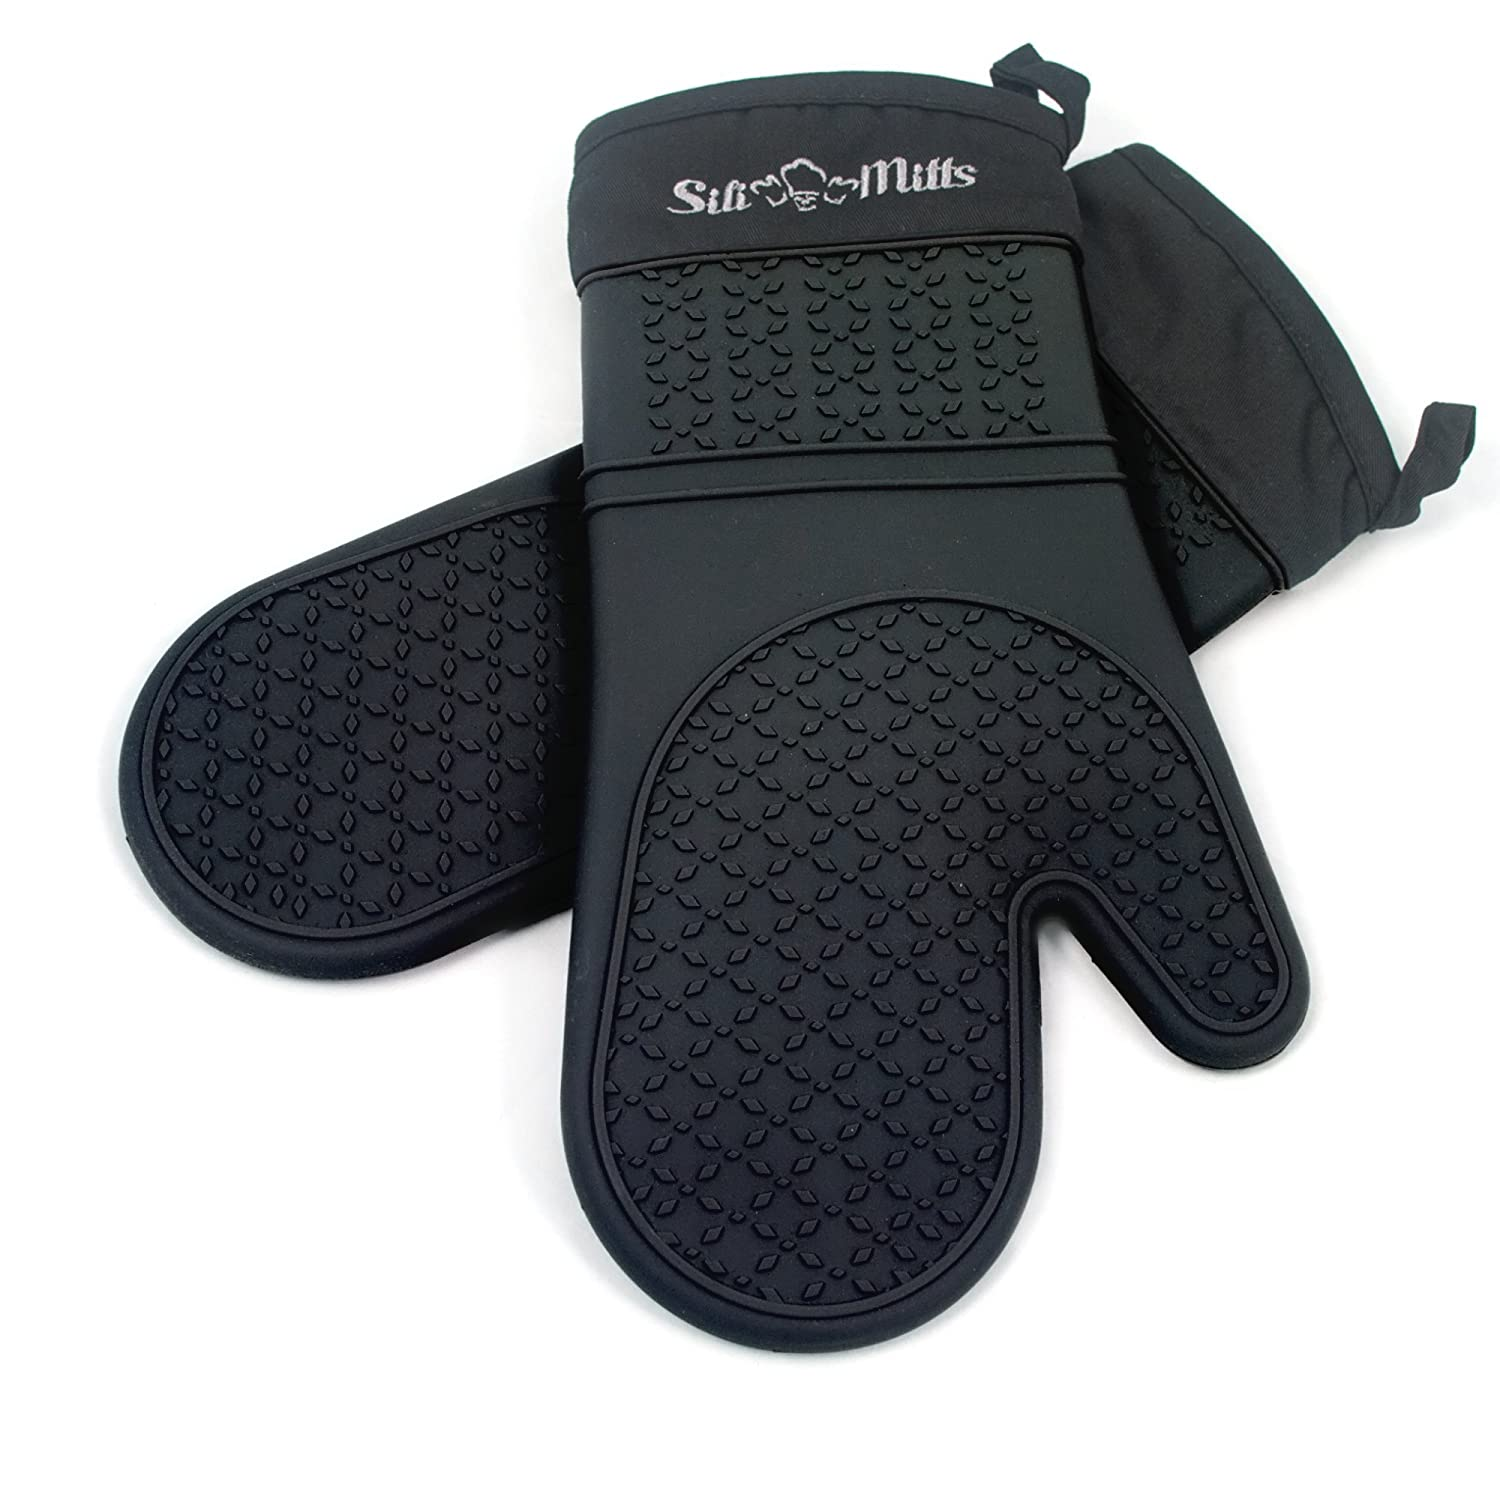 Black Silicone Oven Mitts - 1 Pair of Extra Long Professional Heat Resistant Potholder Gloves - Oven Mitt Set of 2